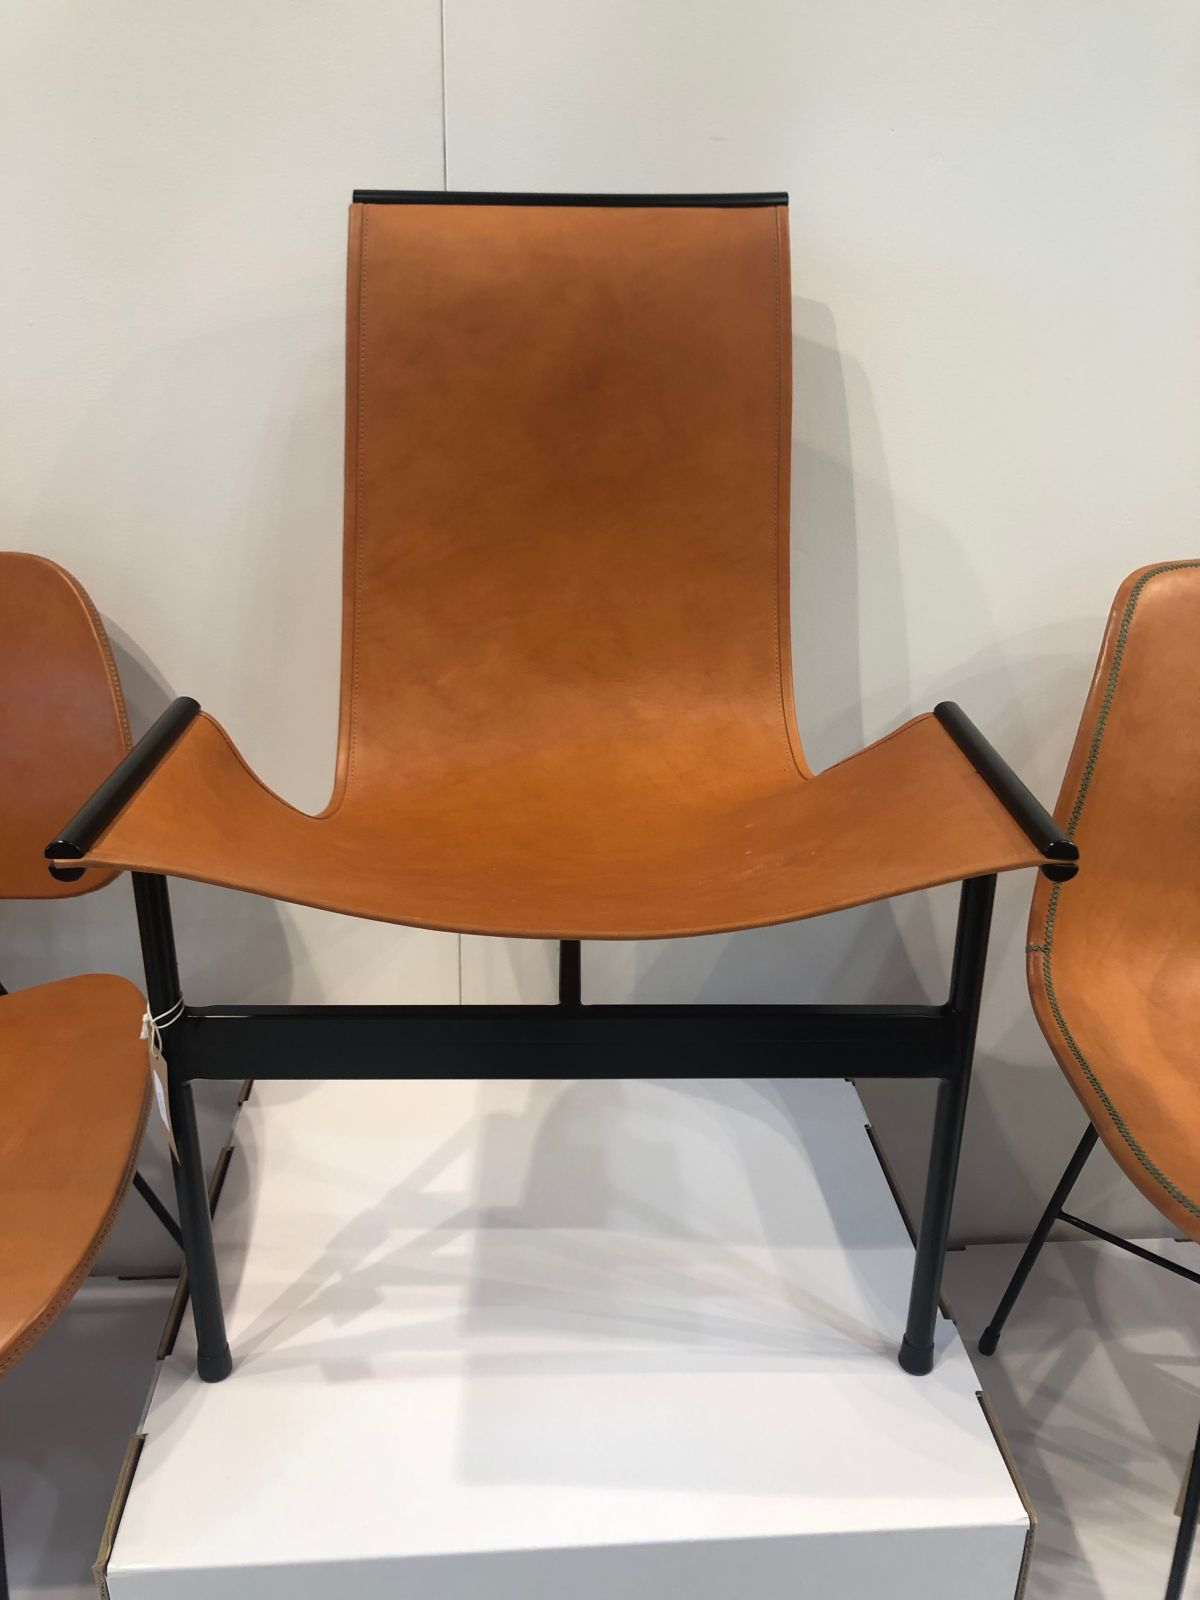 Chair by the Art of Leather.